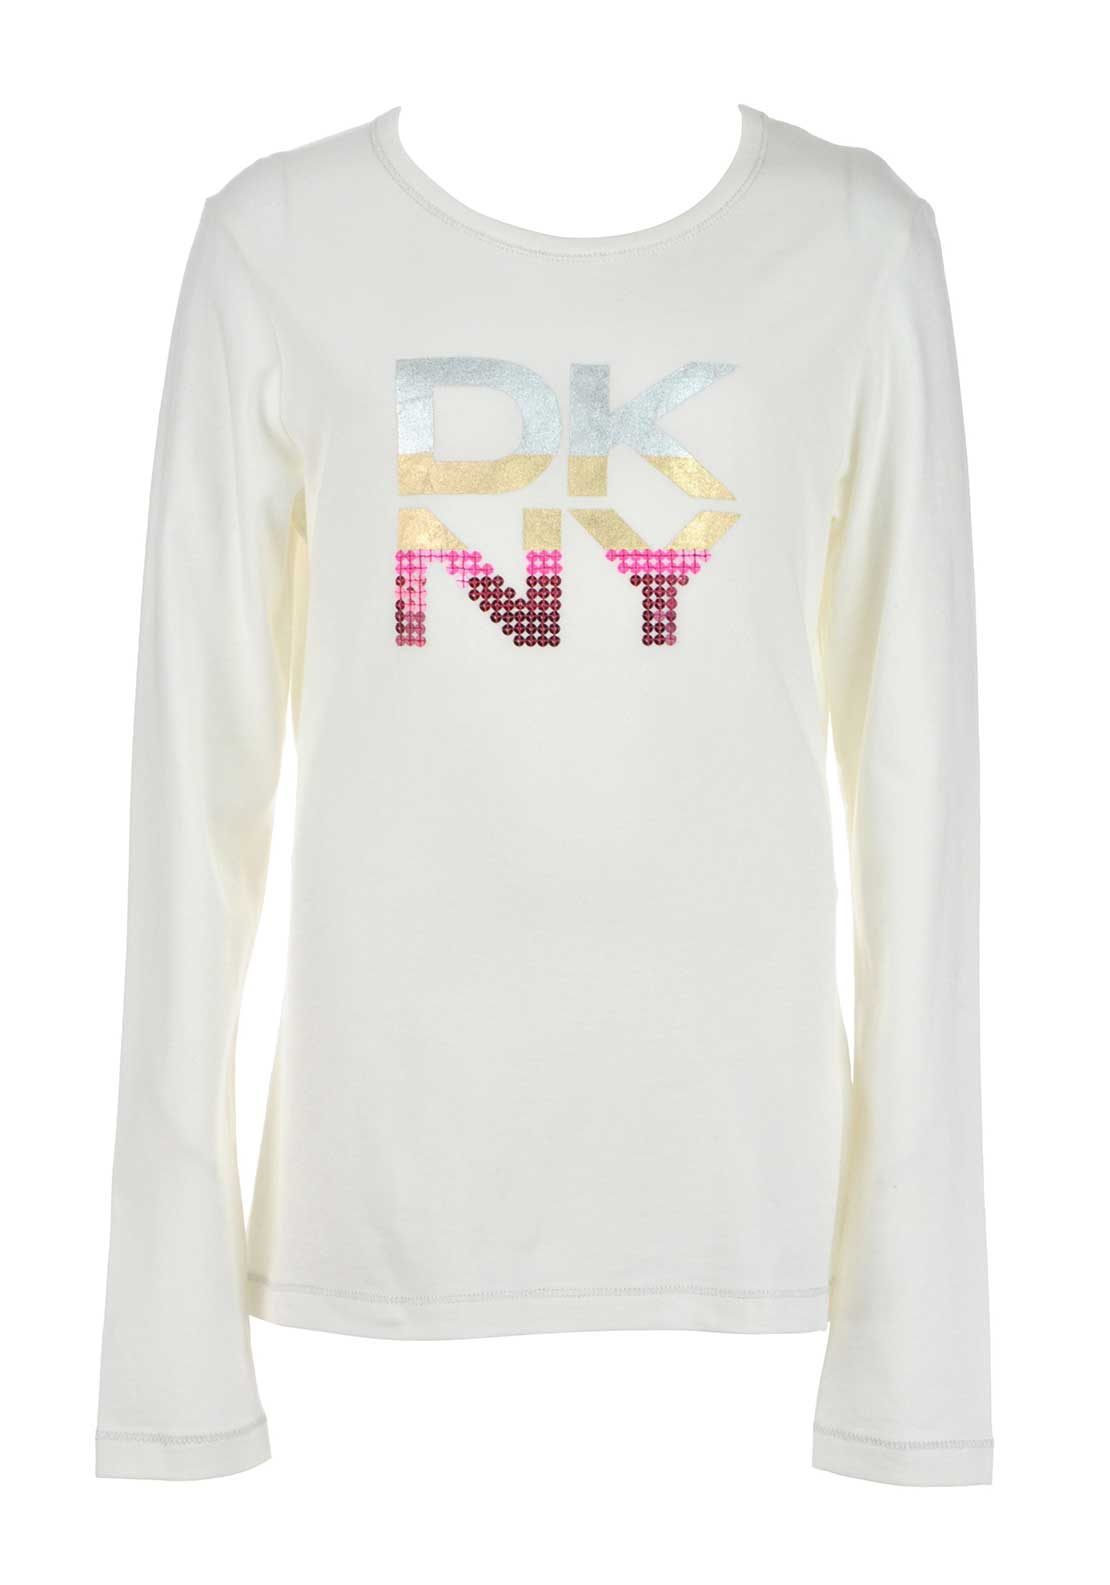 DKNY Girls Long Sleeve Girls Print Jersey Top, Cream